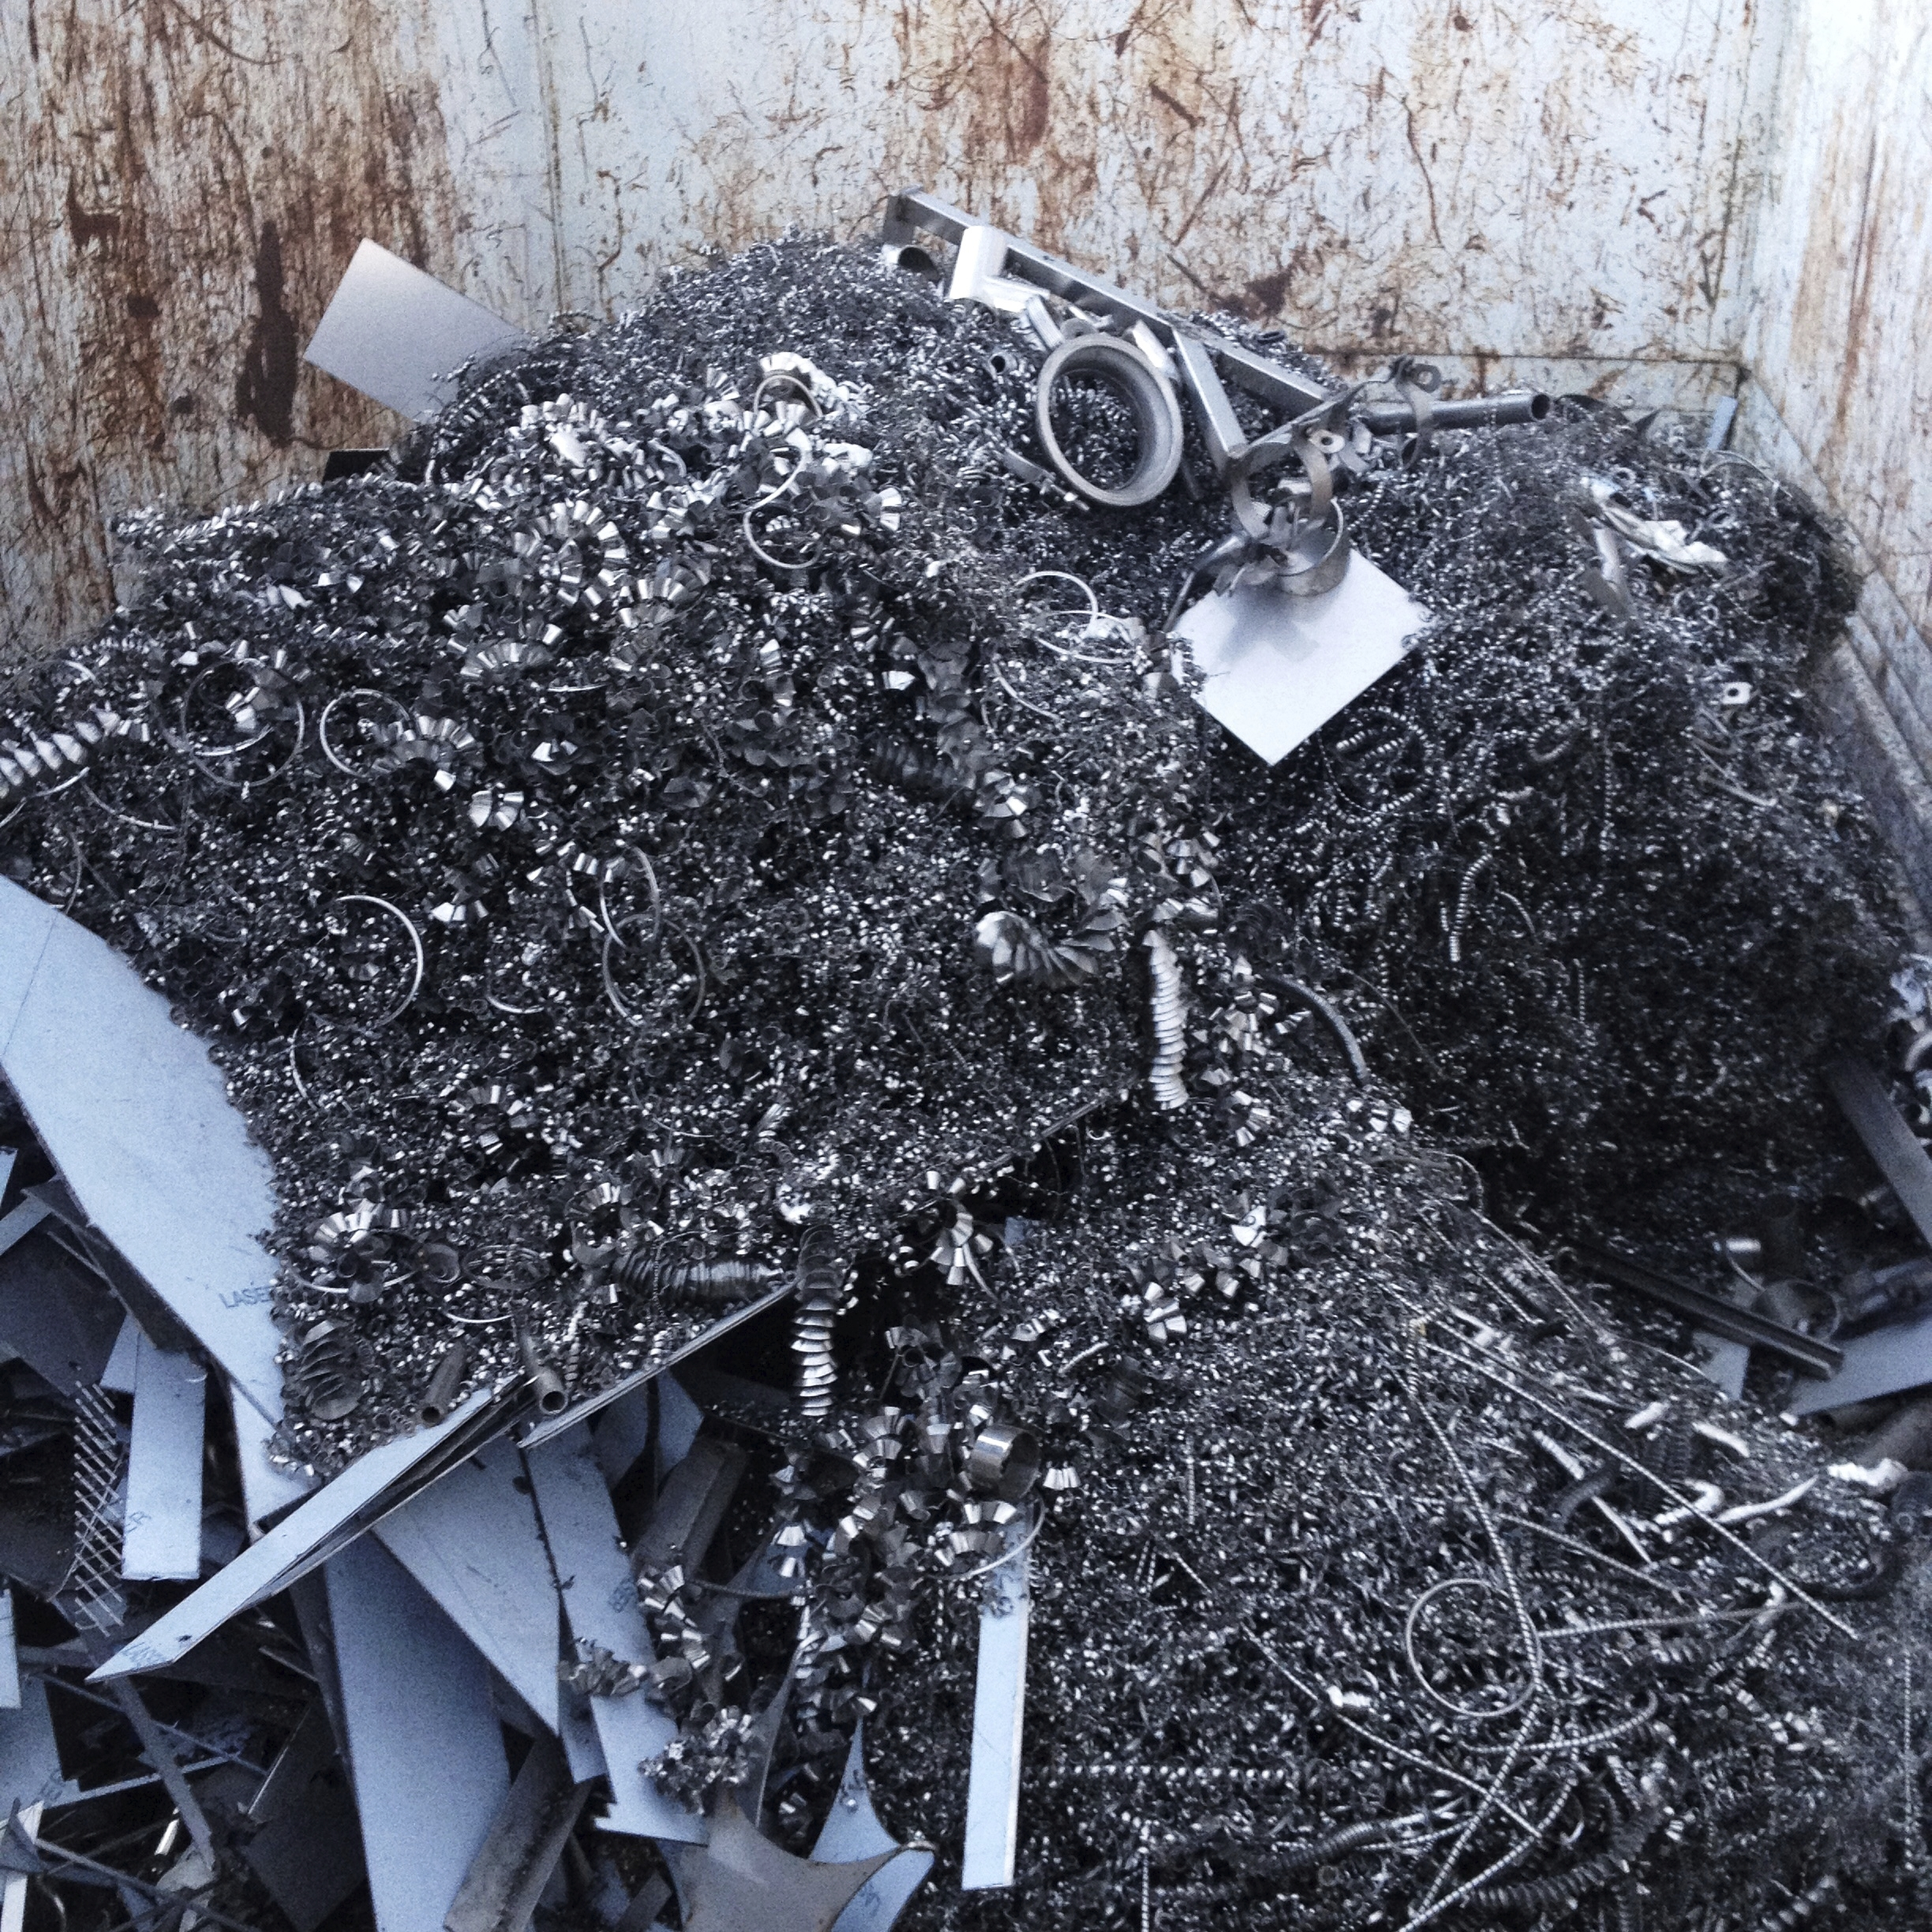 Recycling in the steel industry